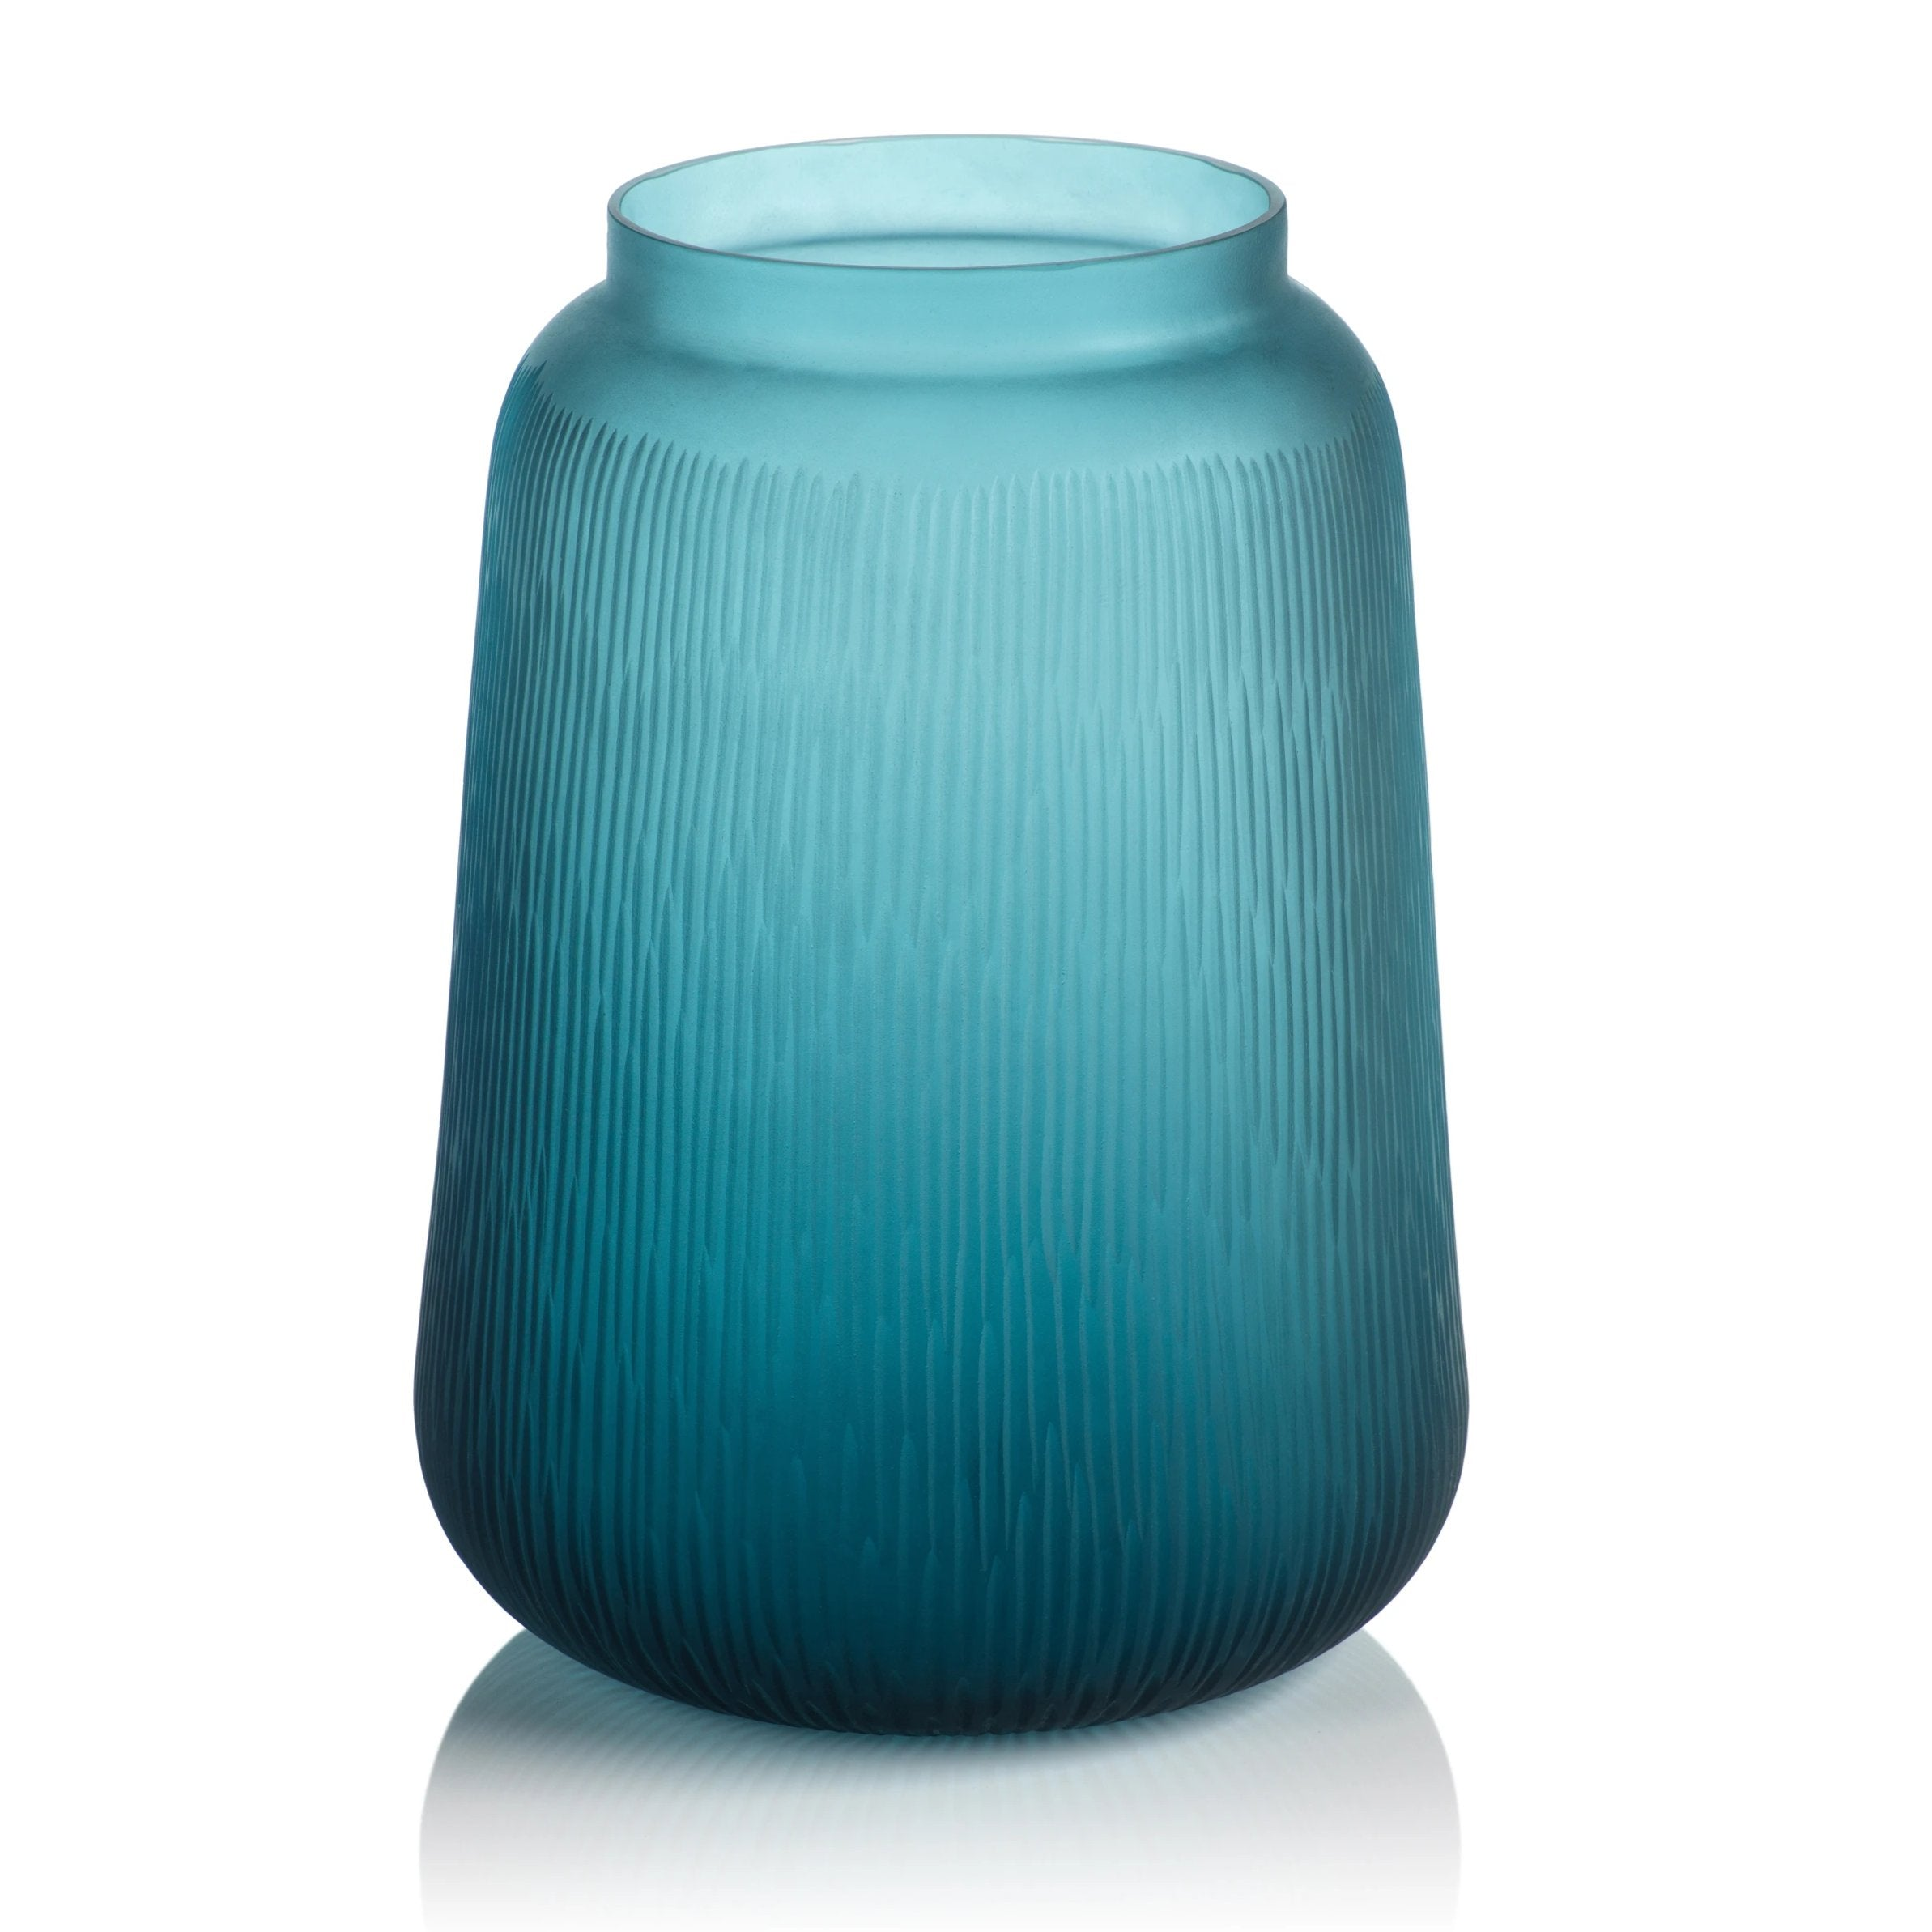 Le Morne Handmade Glass Vase - CARLYLE AVENUE